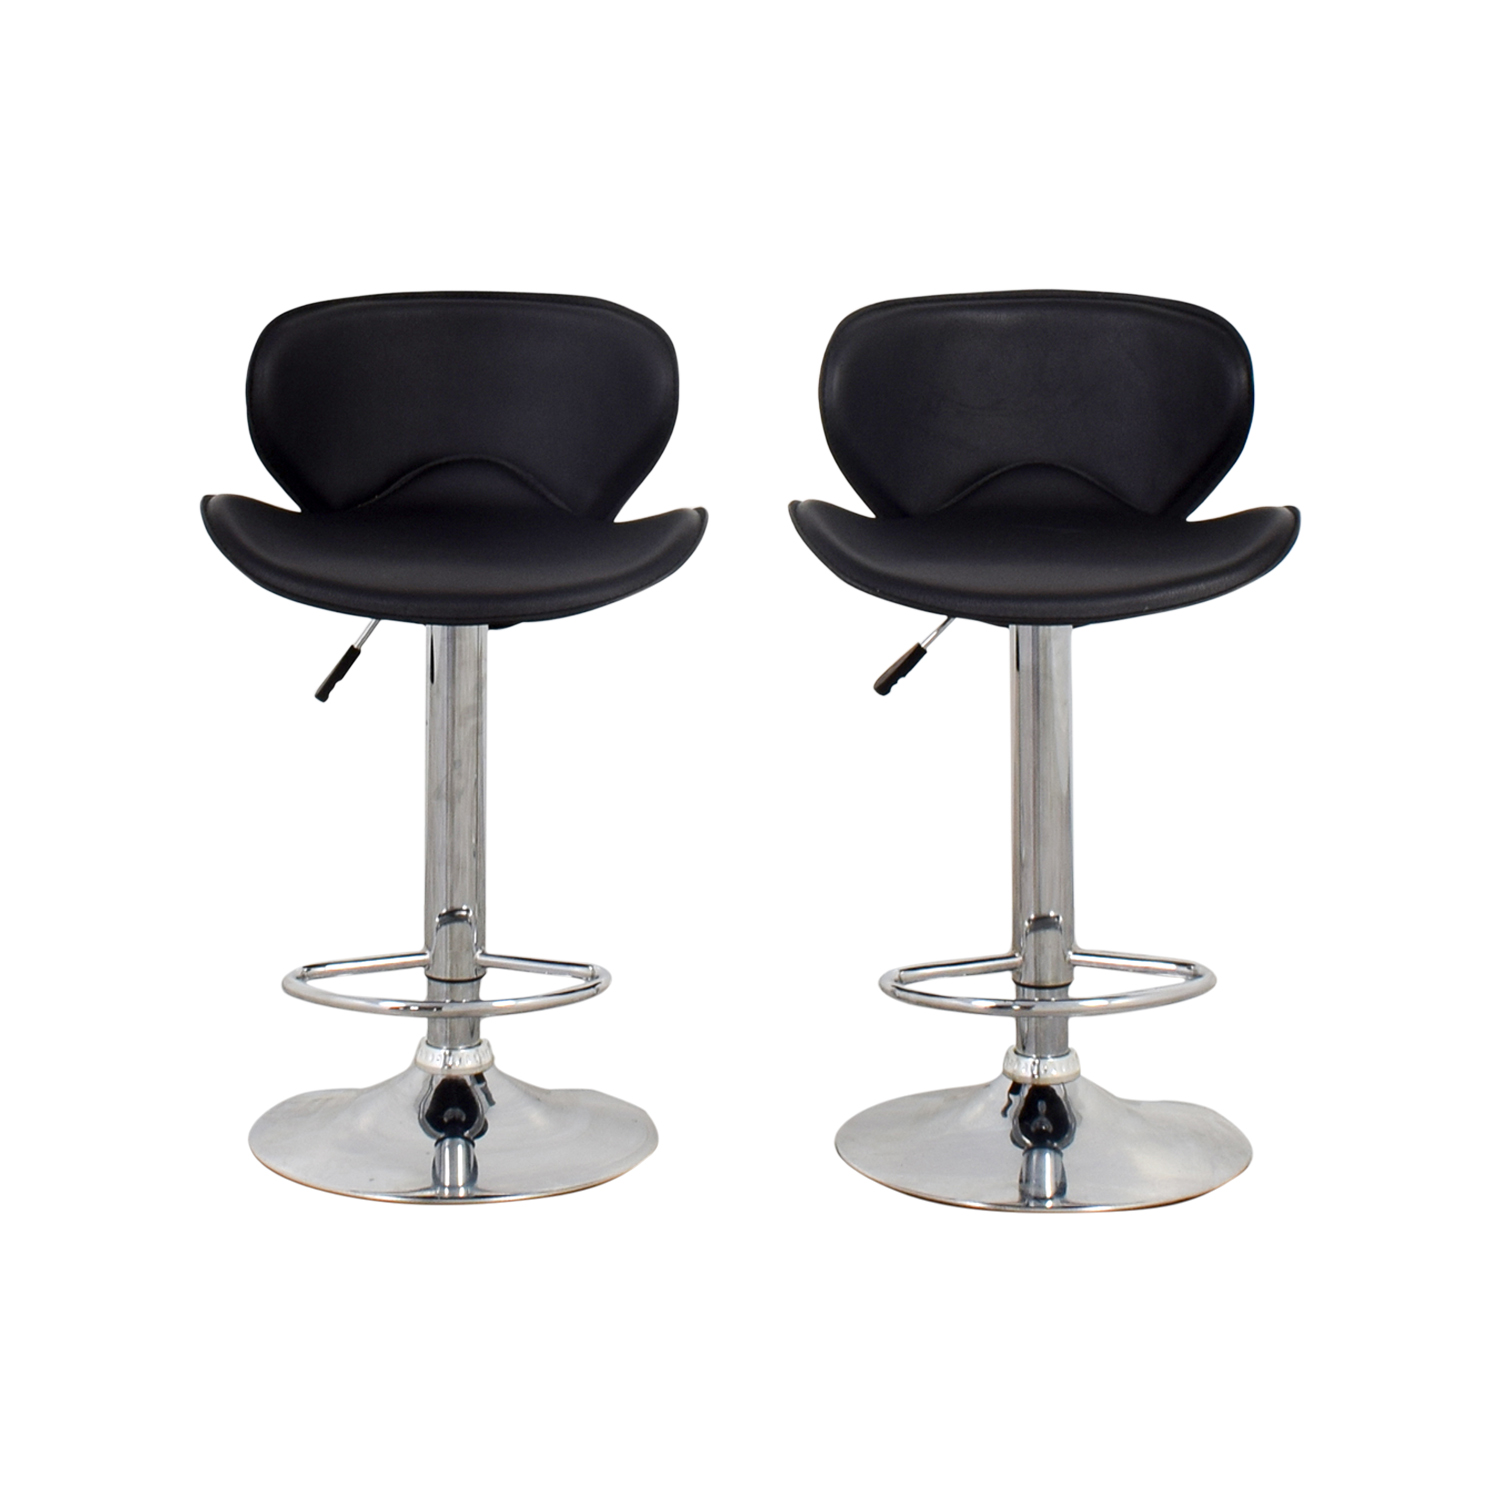 Black Leather Adjustable Bar Stools dimensions